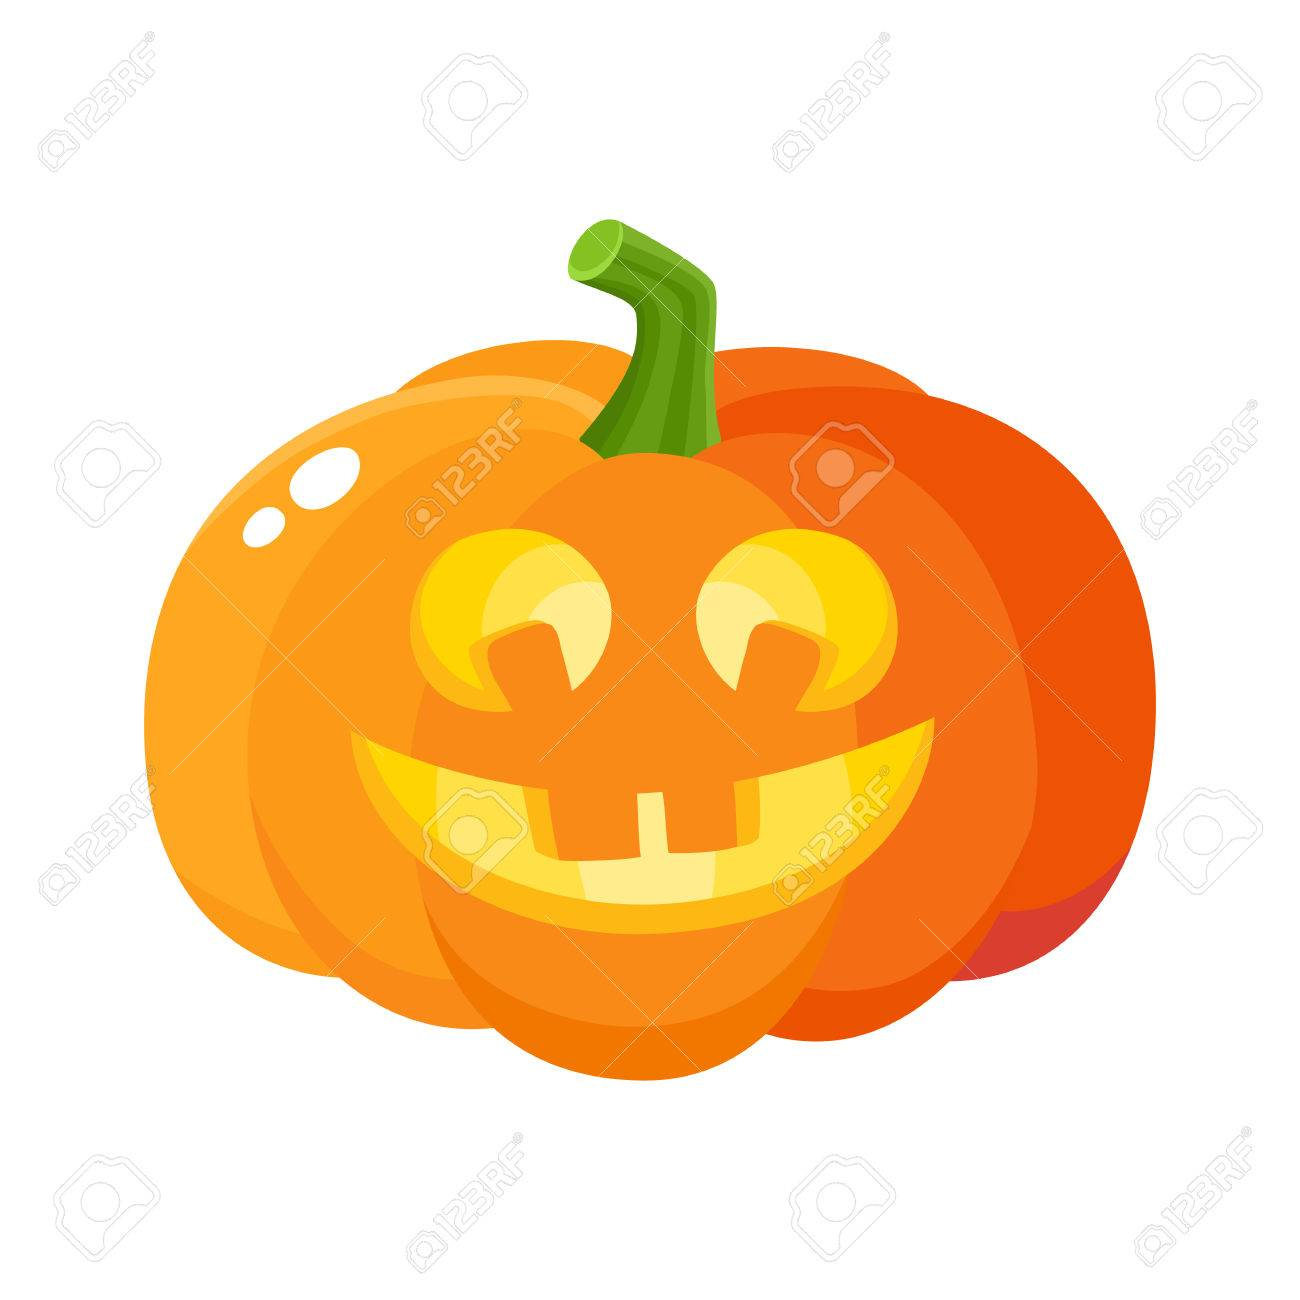 Laughing Happy Pumpkin Jack O Lantern With Funny Teeth Halloween Royalty Free Cliparts Vectors And Stock Illustration Image 82924642